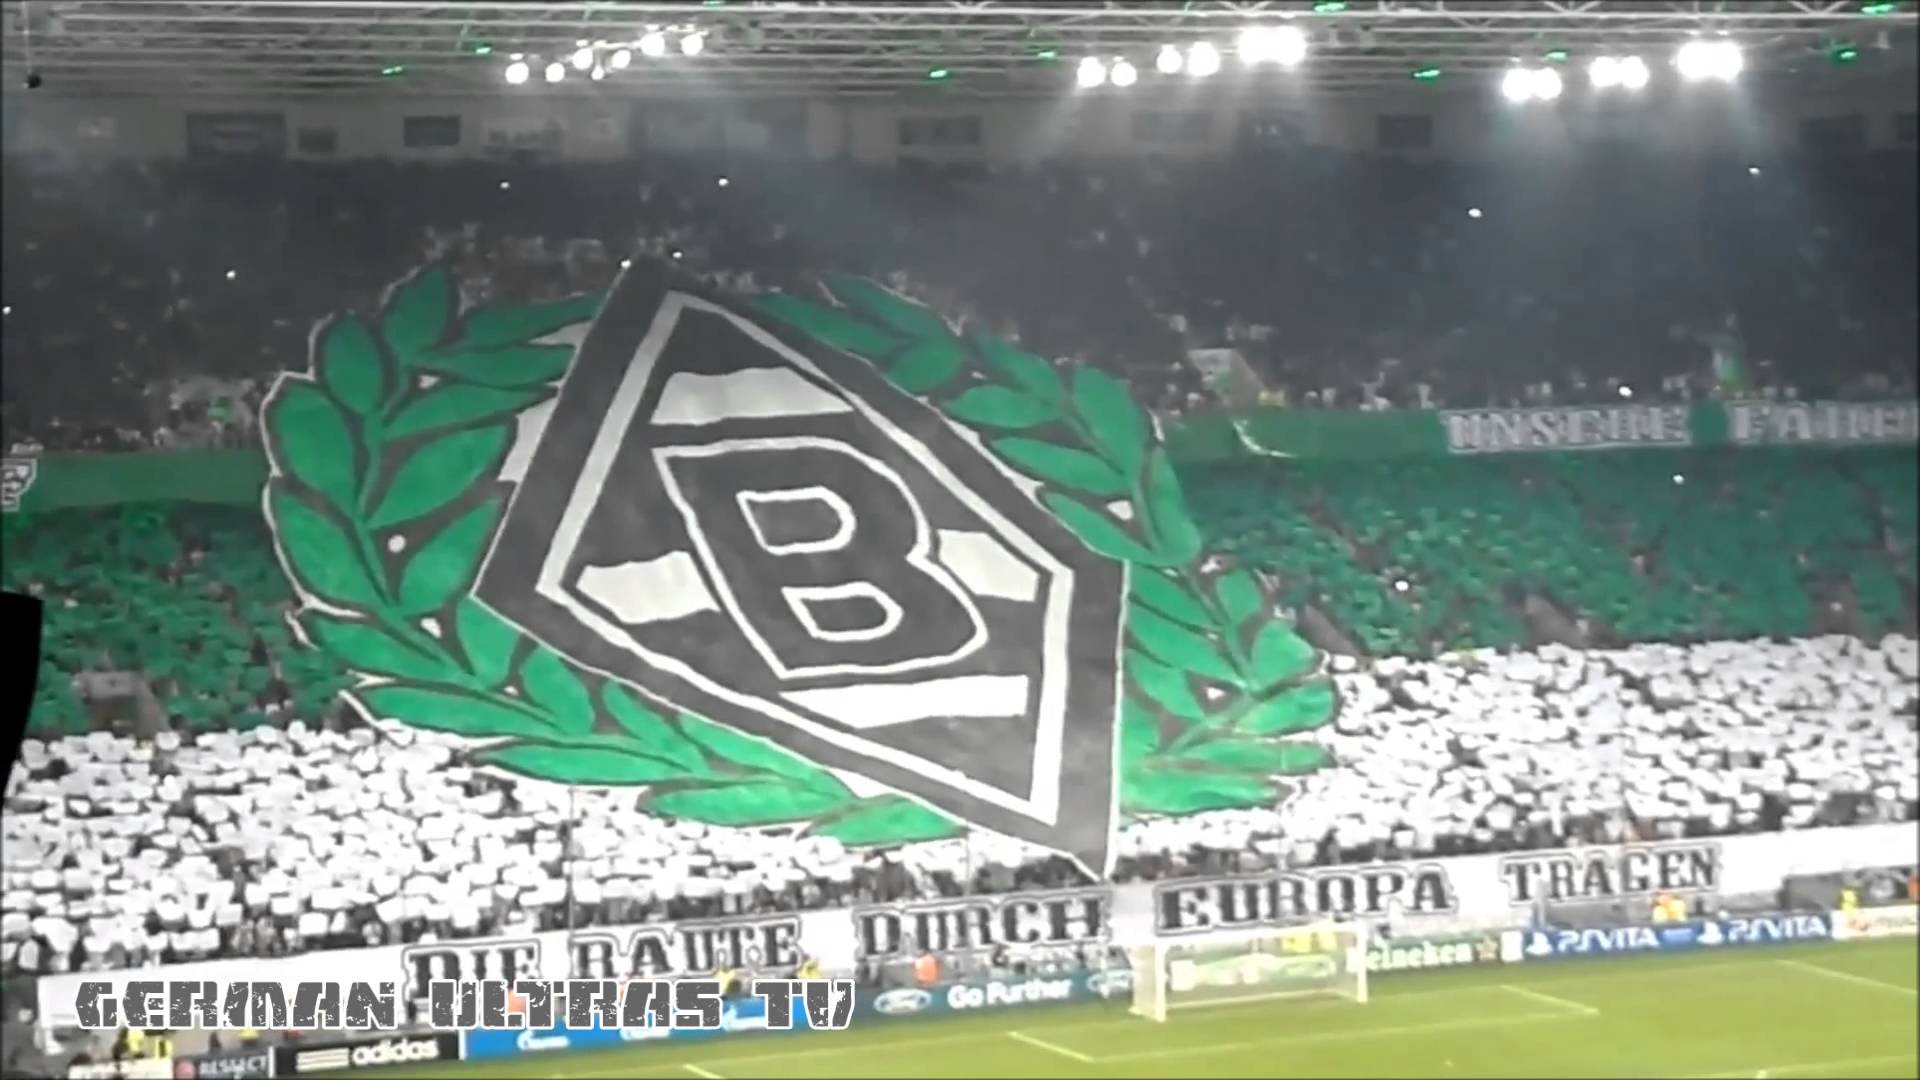 Borussia Mönchengladbach Wallpaper , (53+) image collections of ...